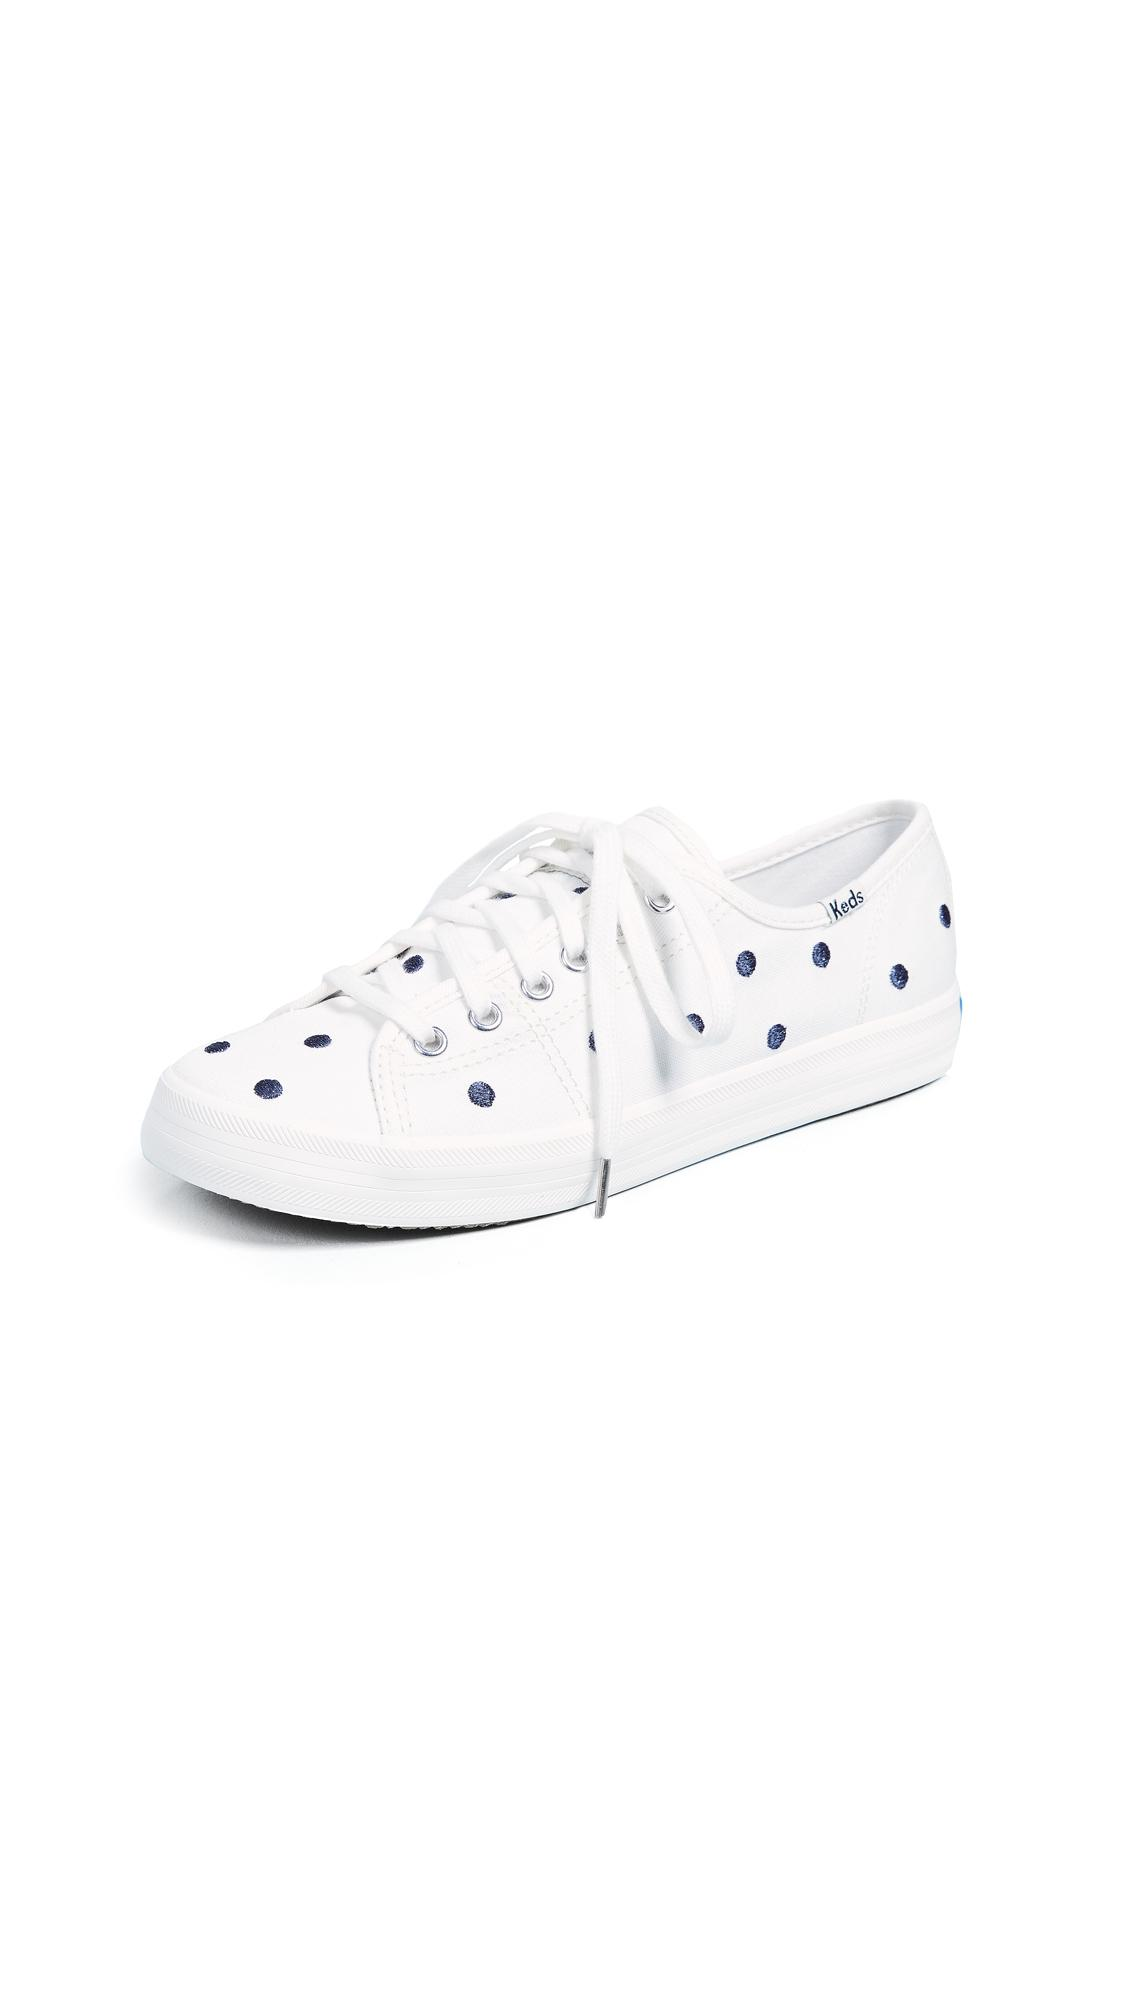 aec6de20d50 Keds X Kate Spade Dancing Dot Sneakers In Cream Navy